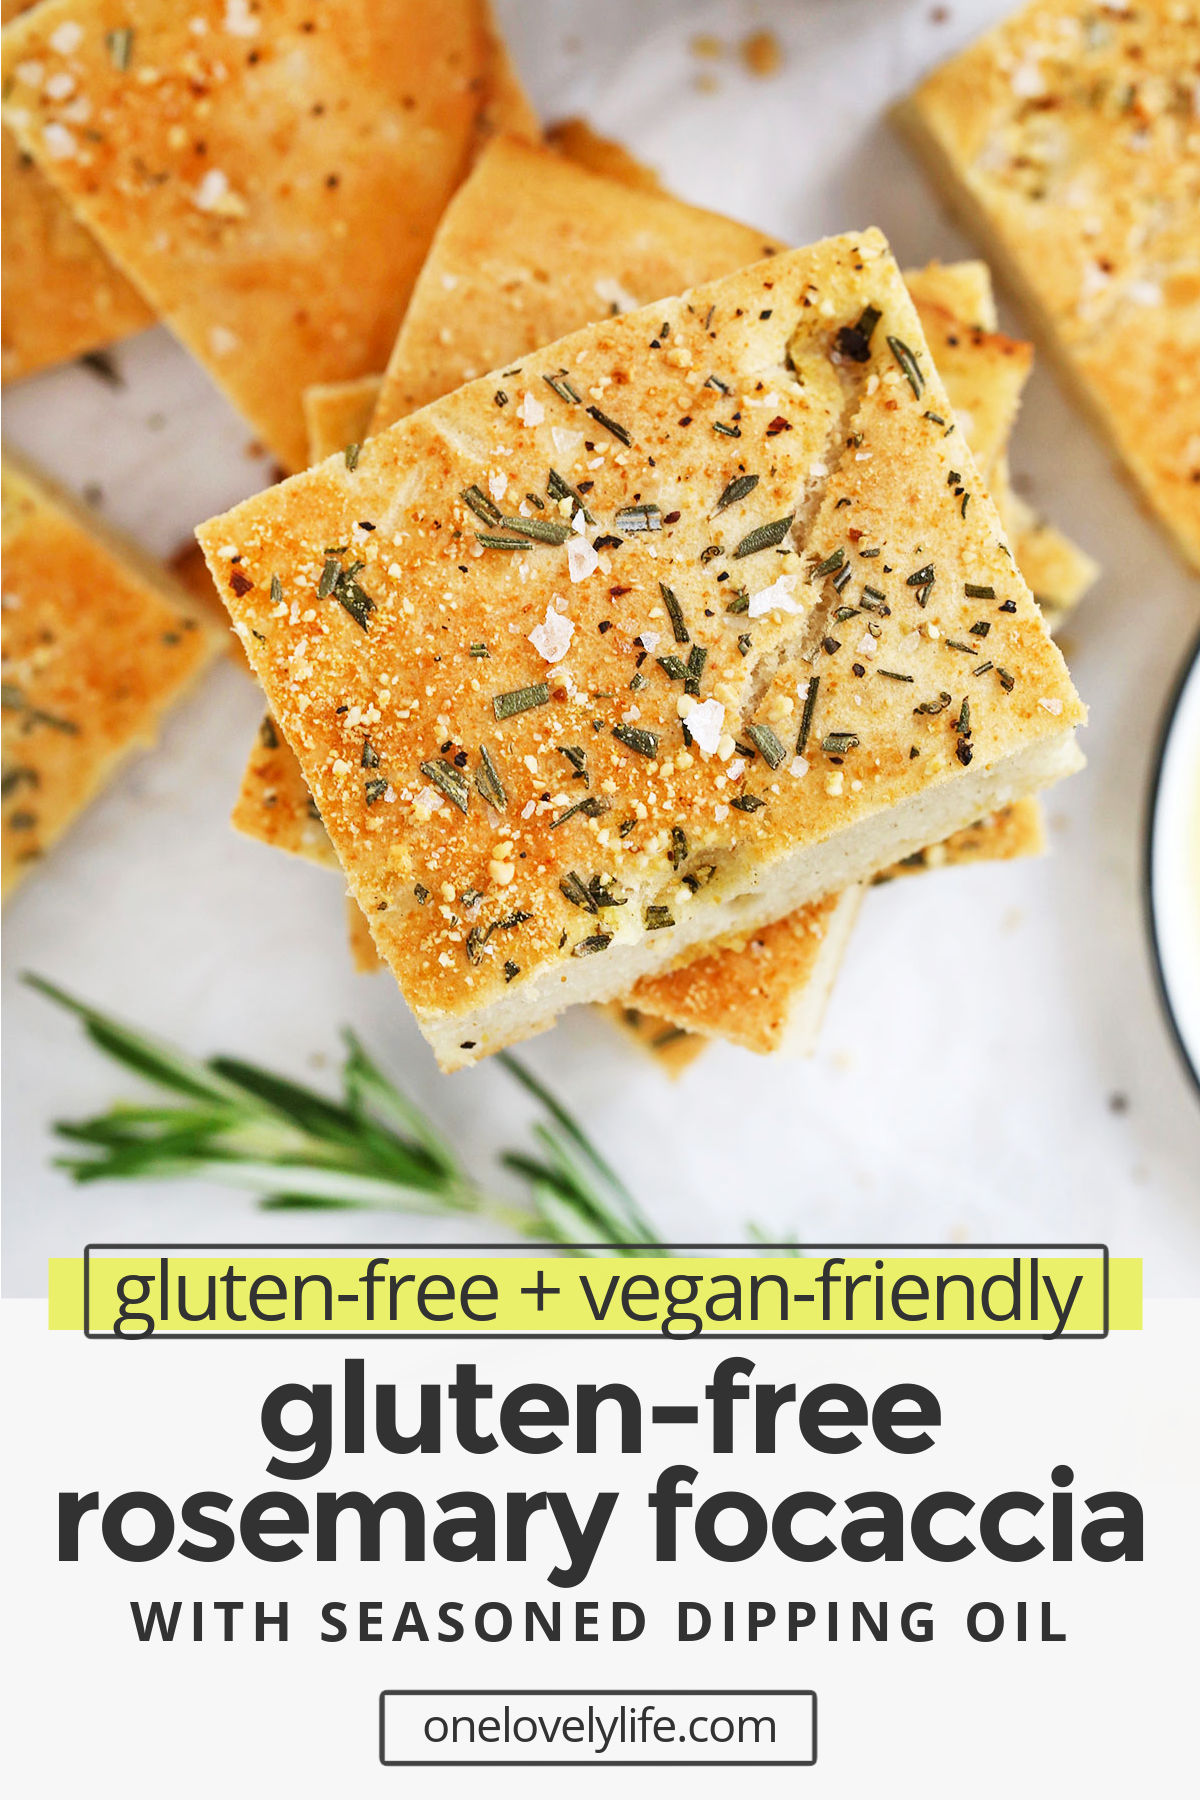 Gluten Free Focaccia - This rosemary focaccia is made entirely gluten free and vegan! It's easier than you think and has the perfect crispy crust and tender, light center. Yum! // gluten free focaccia recipe // rosemary focaccia #focaccia #glutenfree #glutenfreebread #glutenfreebaking